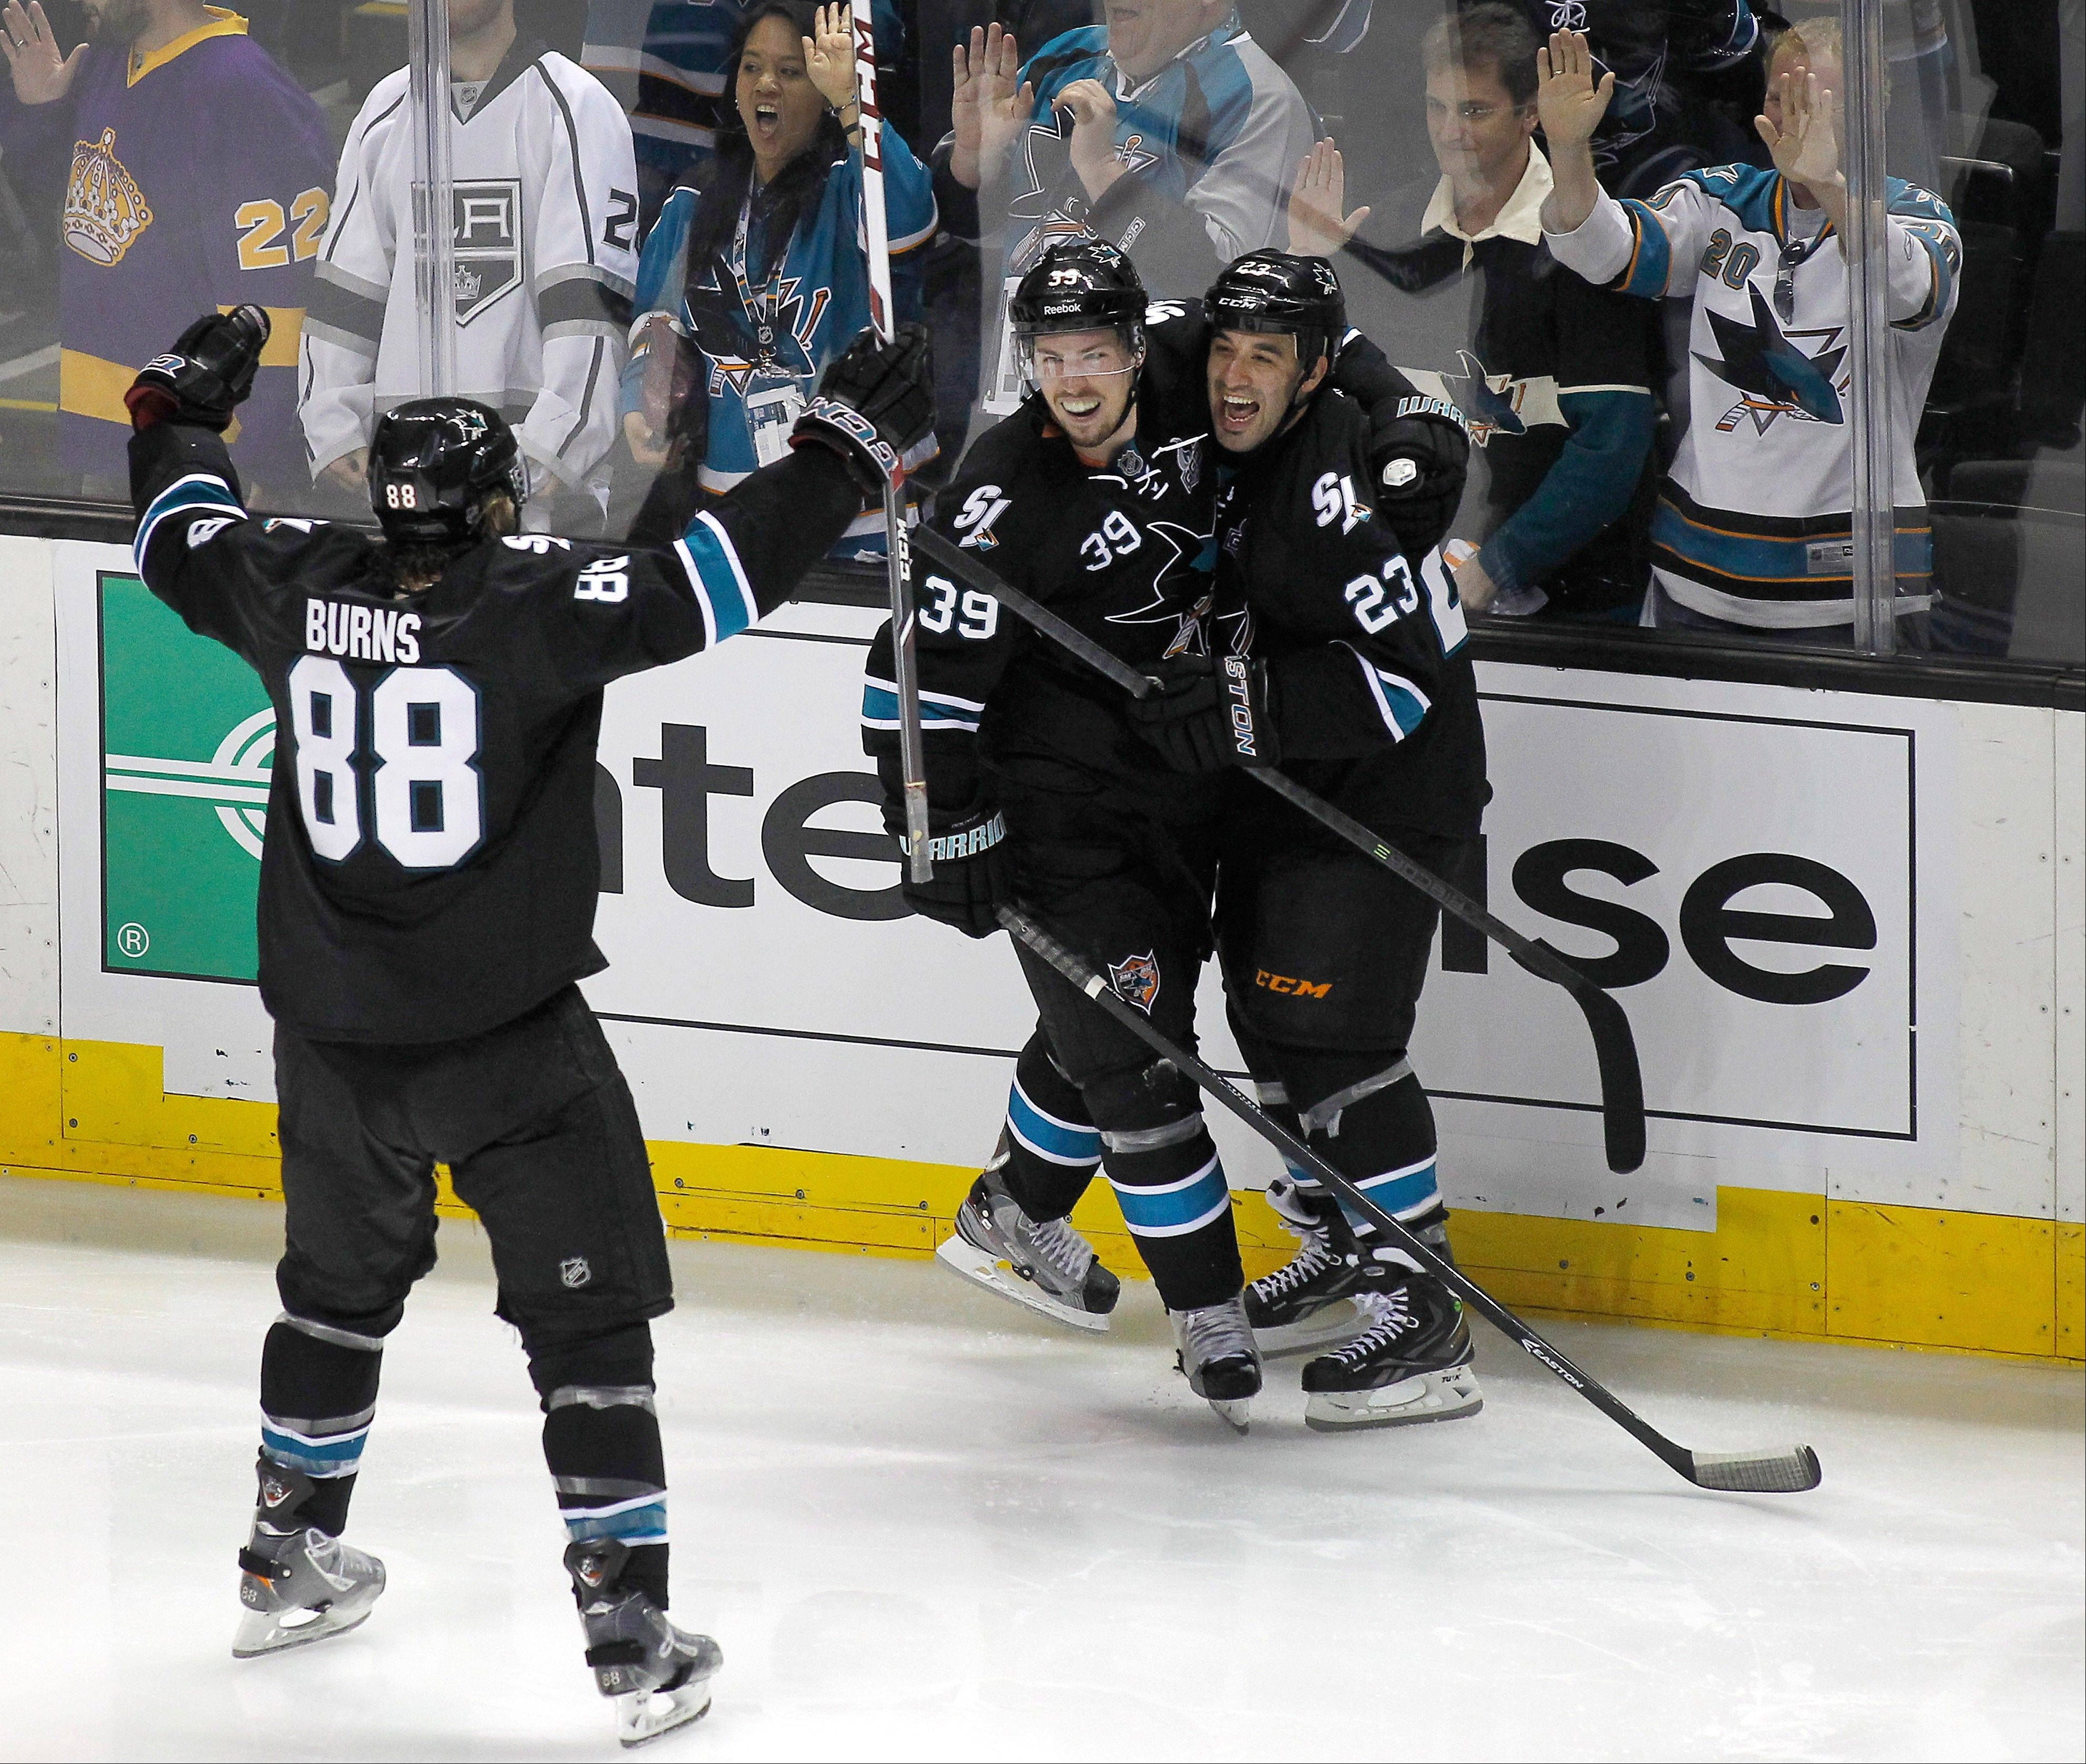 San Jose Sharks center Logan Couture (39) celebrates with Scott Gomez (23) and Brent Burns (88) after Couture scored the winning goal during overtime in Game 3 of their second-round NHL hockey Stanley Cup playoff series, Saturday, May 18, 2013, in San Jose, Calif. San Jose won in overtime 2-1.